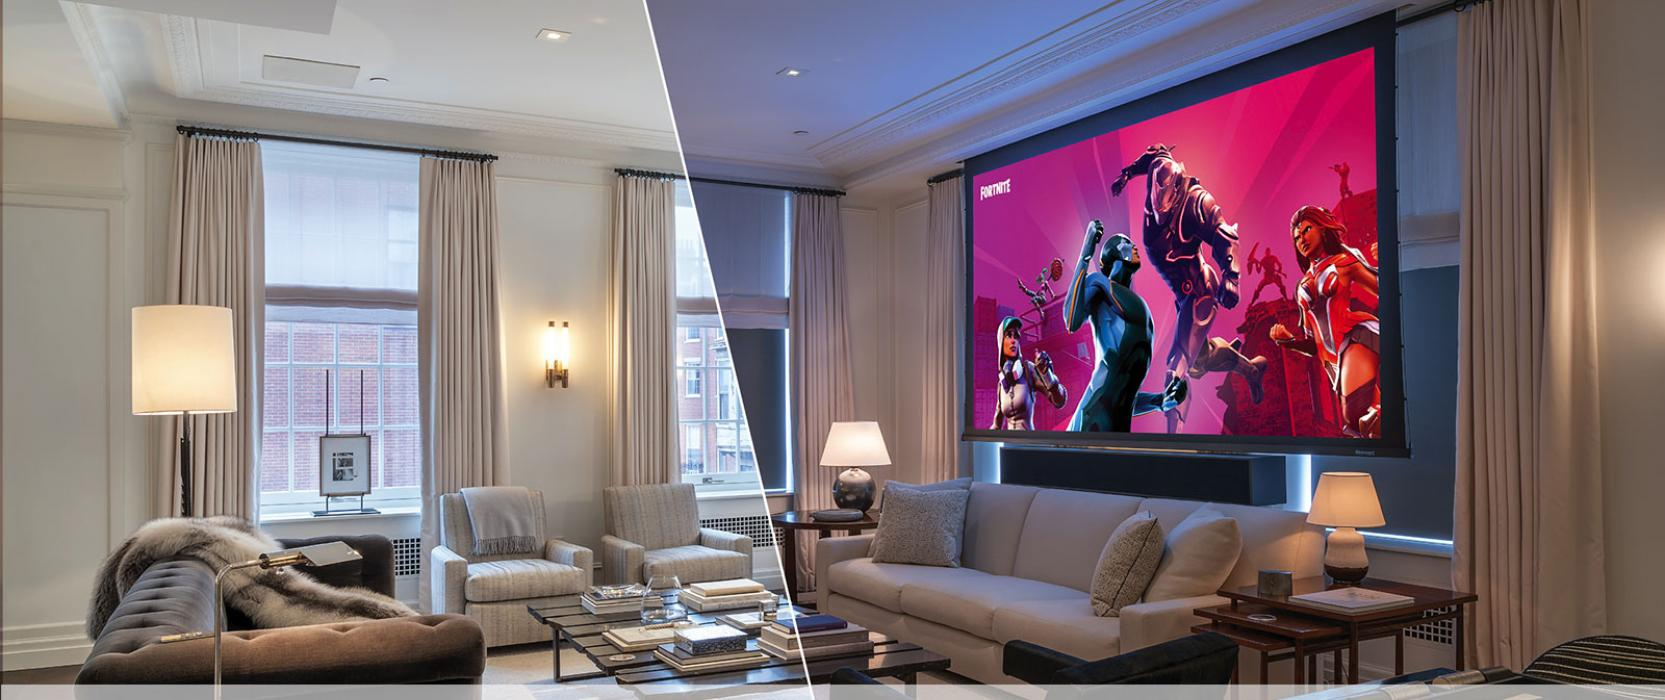 Living Room transforms into a Gaming Room by Cutting Edge Systems Corp.